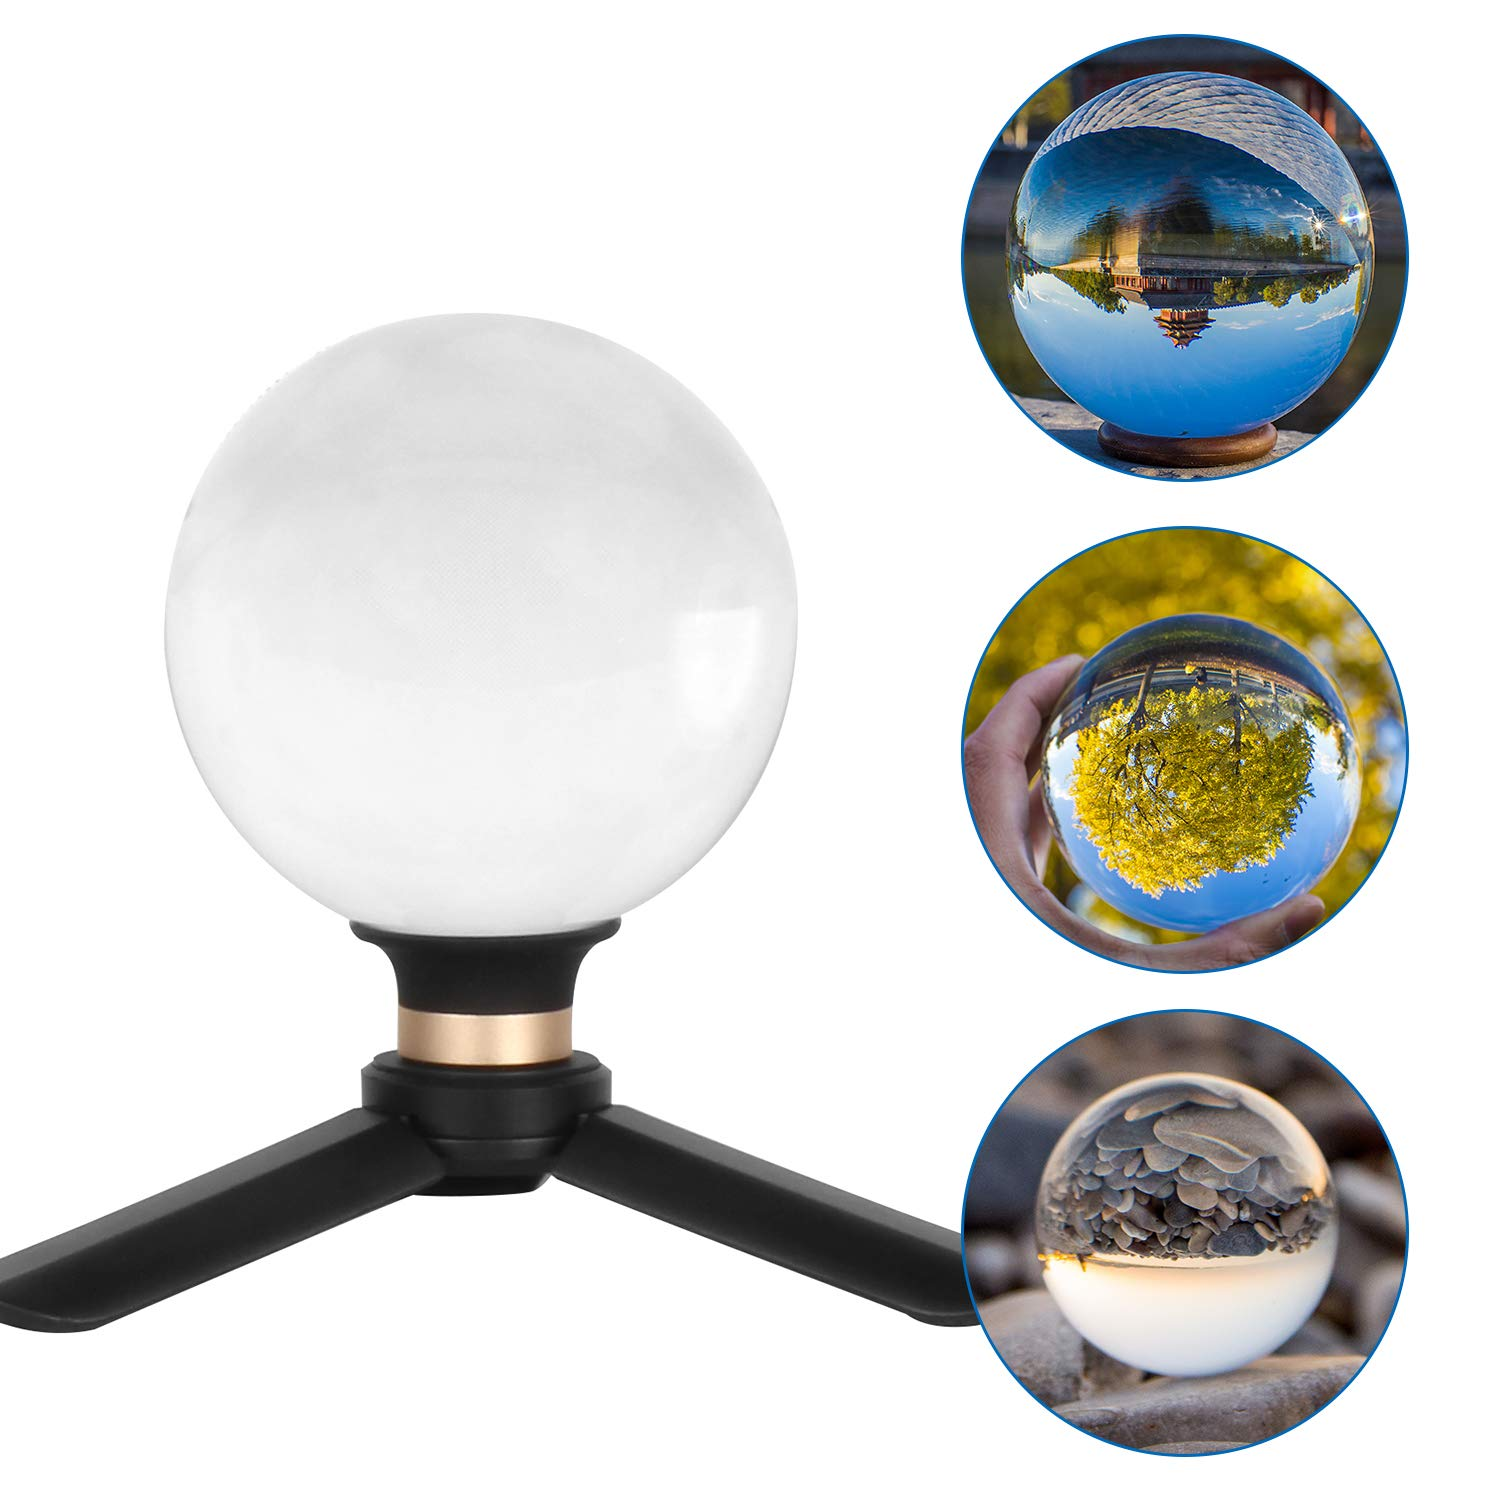 Besnfoto Crystal Ball Photography 90mm K9 Lens Ball with Mini Tripod and Suction Mount Base Stand Clear Decorative Glass Props Ball with Padded Shockproof Sleeve Bag by Besnfoto